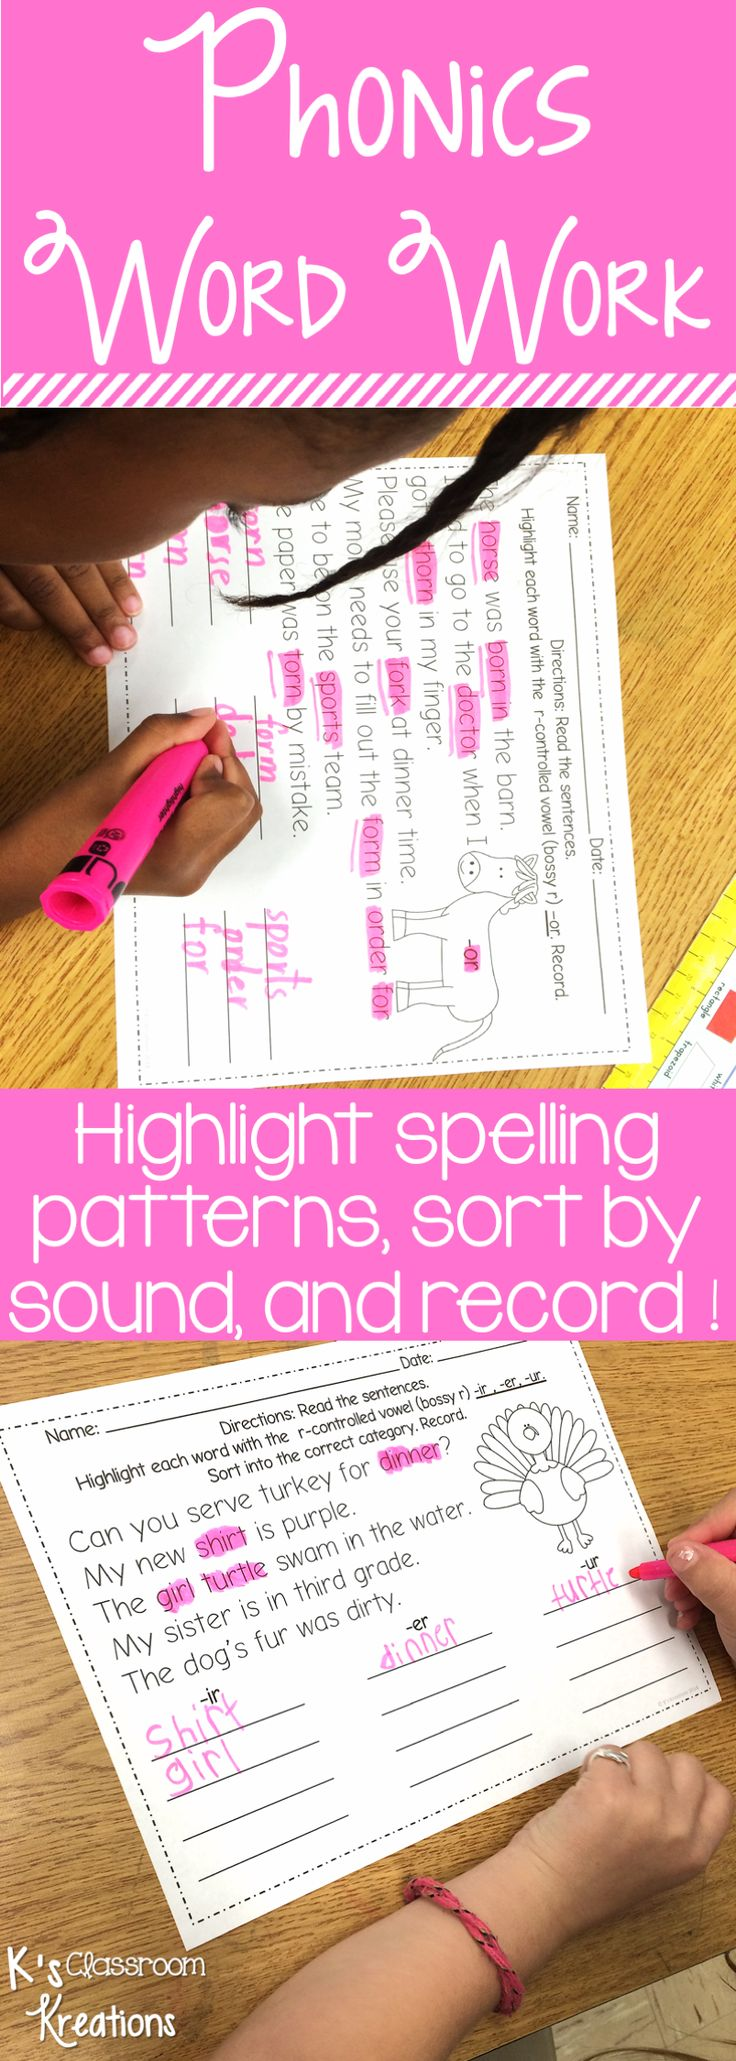 Bring excitement to your Kindergarten, first grade, and second grade phonics lessons by using highlighters and these engaging word work activities! Build phonemic awareness and decoding skills with these no-prep printables. Whether you're using these for interventions, small groups, literacy centers, or whole group instruction, students will love identifying and sorting spelling patterns within text.